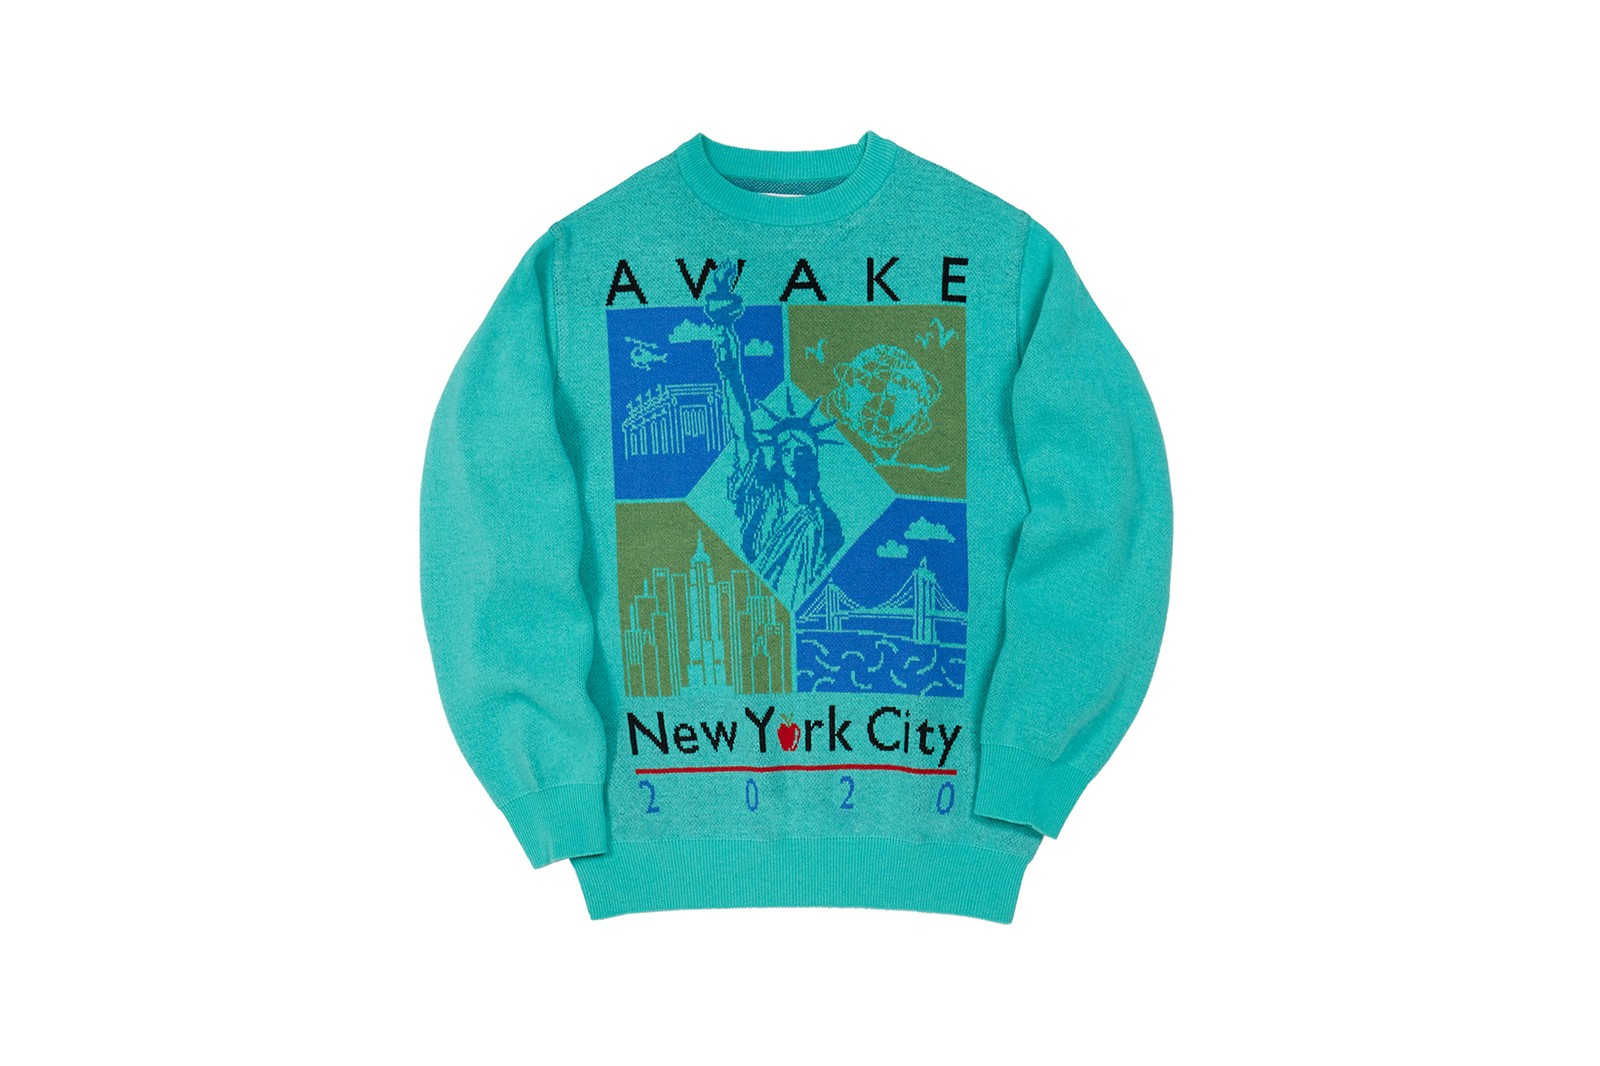 awake ny fall winter collection silk long sleeve shirt green white black egyptian print necklace accessories clothes fashion lookbook